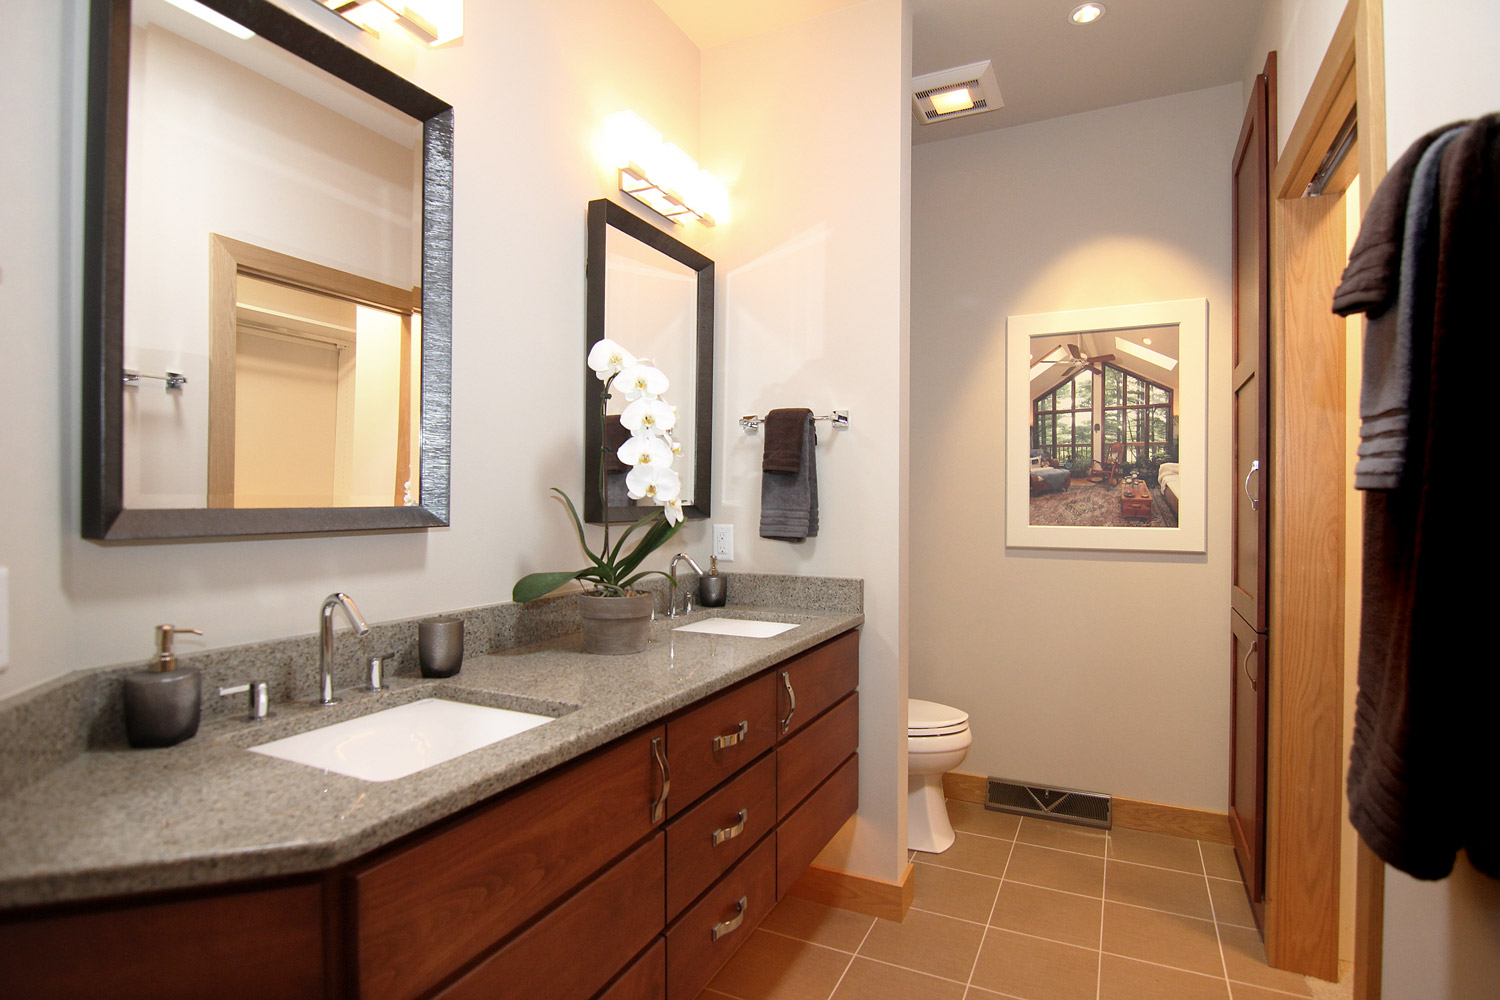 Easy to clean bathroom design